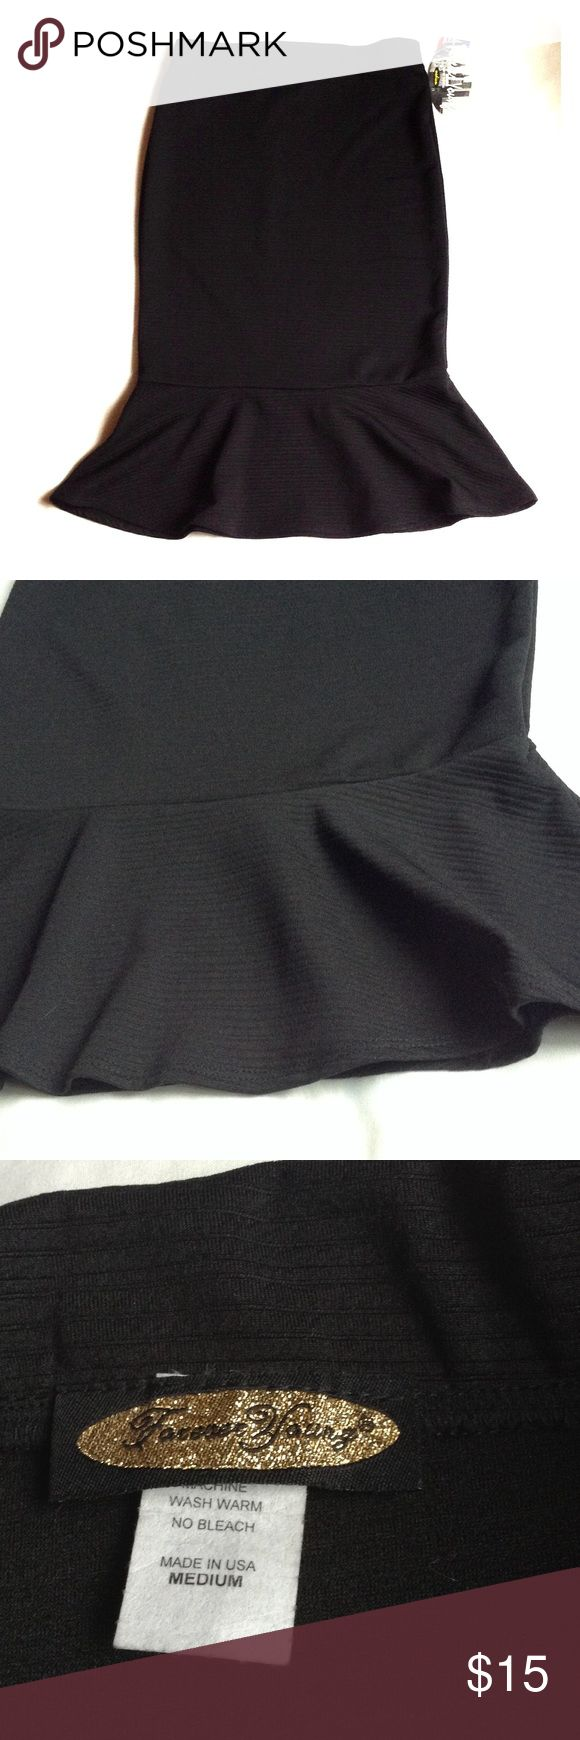 "Forever Young Black Peplum Skirt Forever Young Black Peplum Skirt. Elastic waistband. Measurement laying flat: waist 13"" and length 25 1/2"" Forever Young Skirts"